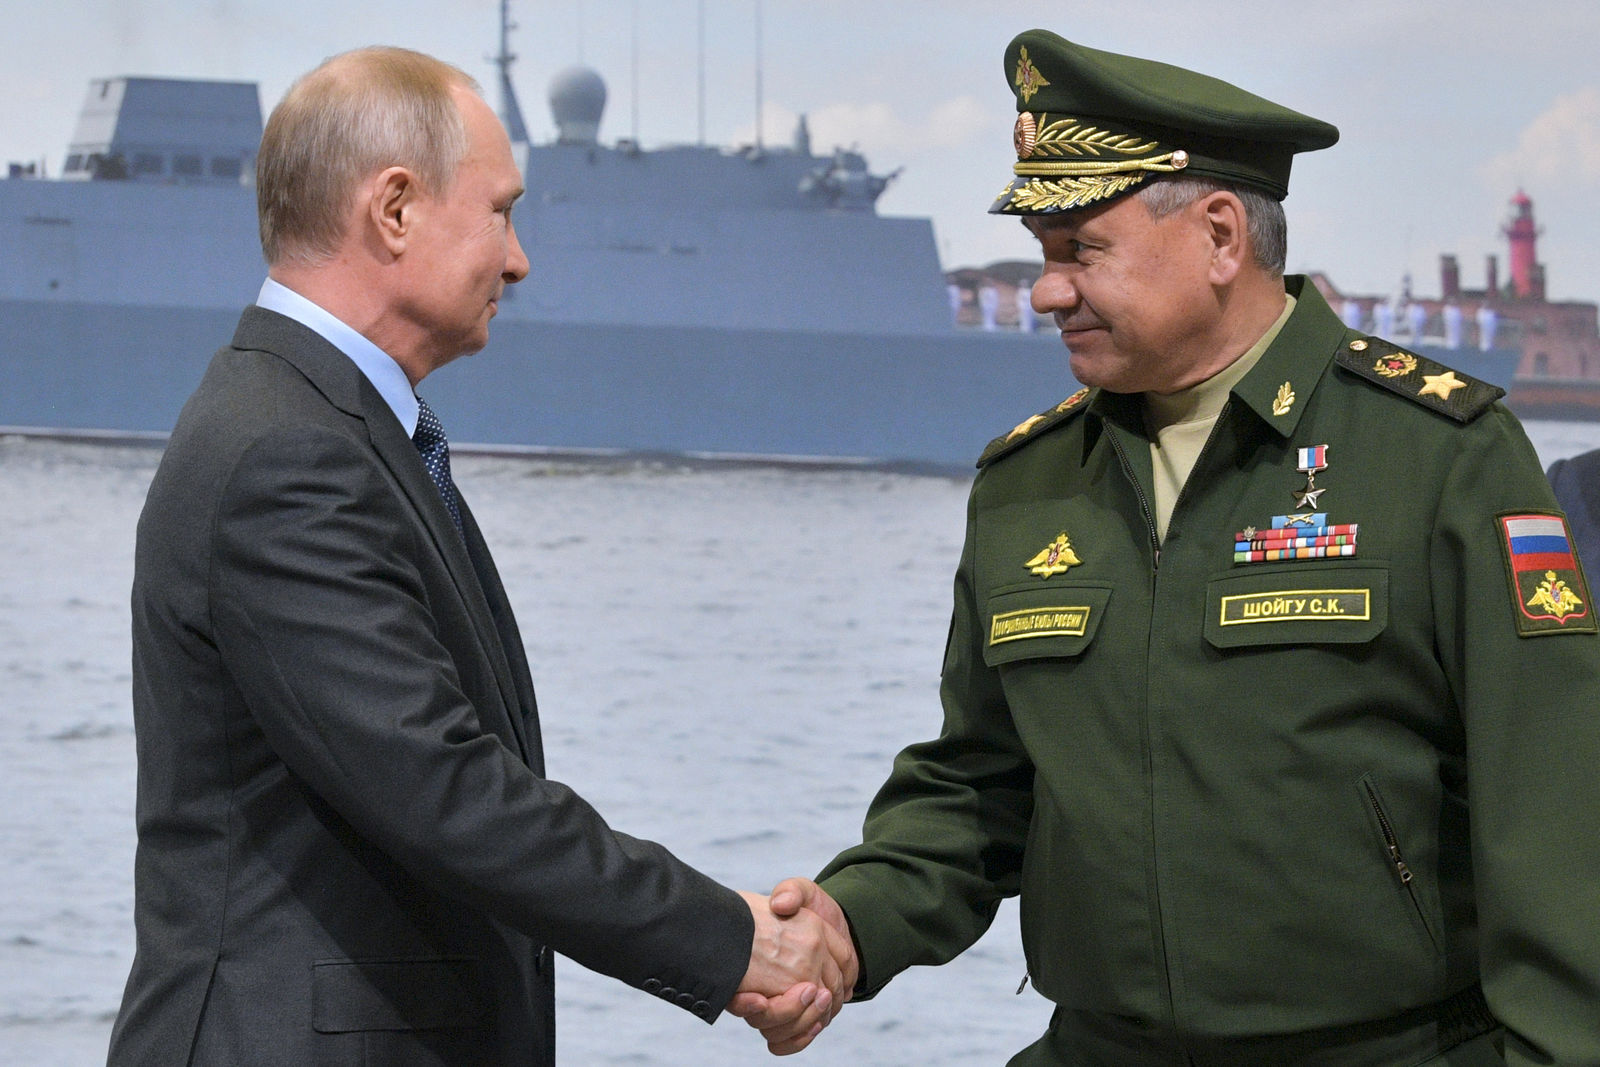 Russian President Vladimir Putin, left, and Russian Defense Minister Sergei Shoigu shake hands during a visit a shipyard in St. Petersburg, Russia, Tuesday, April 23, 2019. Putin said the government will pursue an ambitious navy modernization effort. (Alexei Druzhinin, Sputnik, Kremlin Pool Photo via AP)